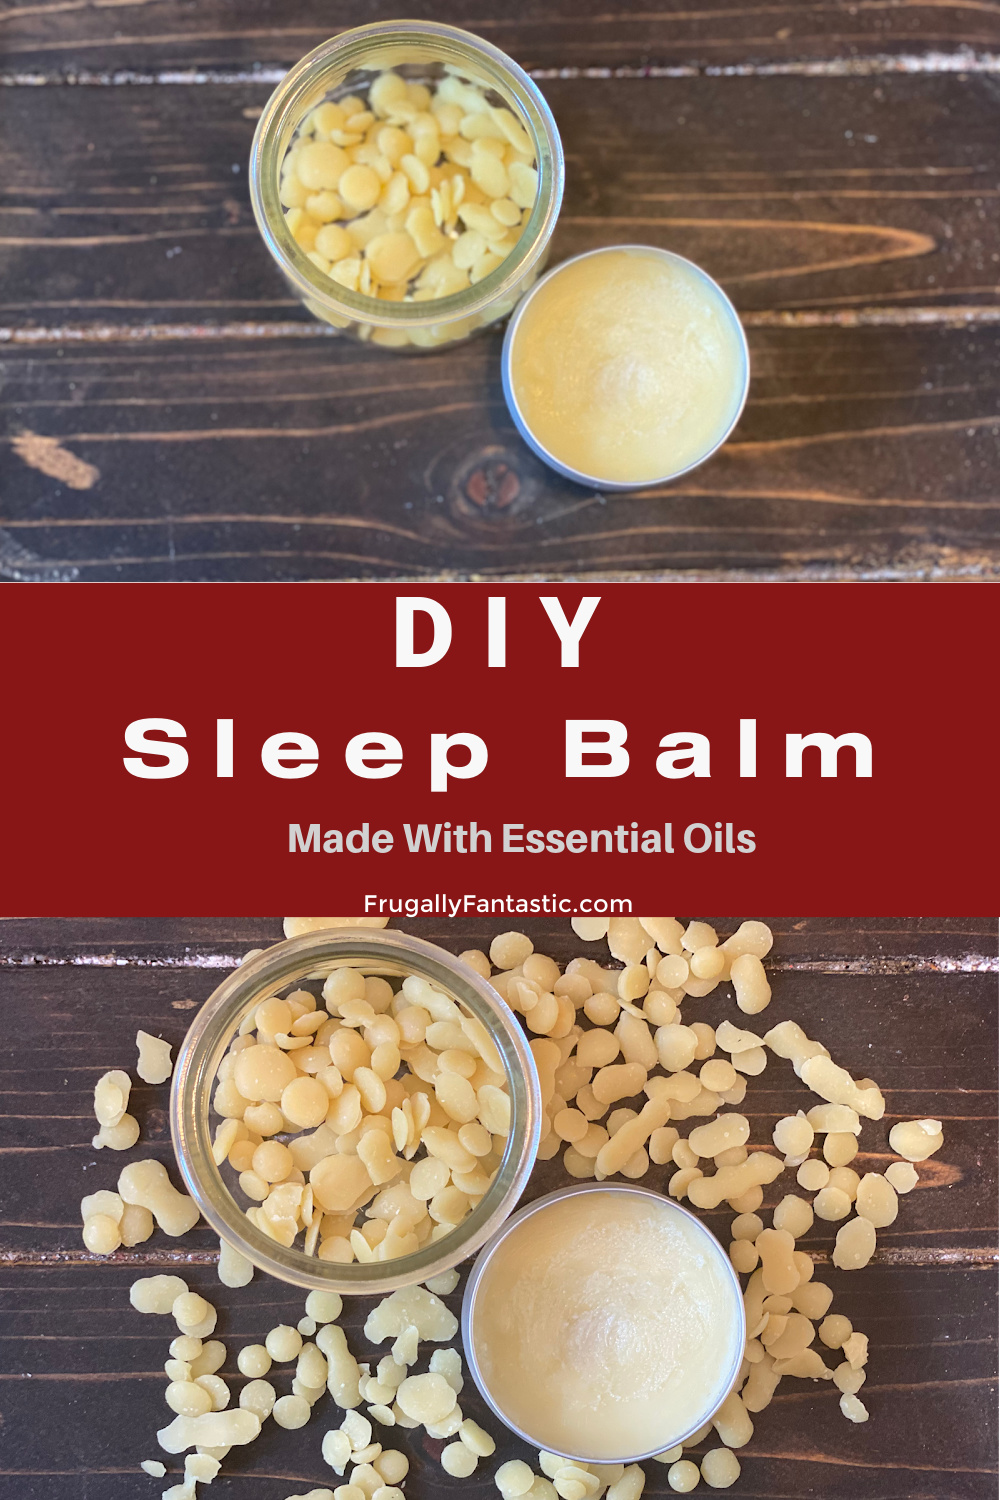 DIY Sleep Balm FrugallyFantastic.com